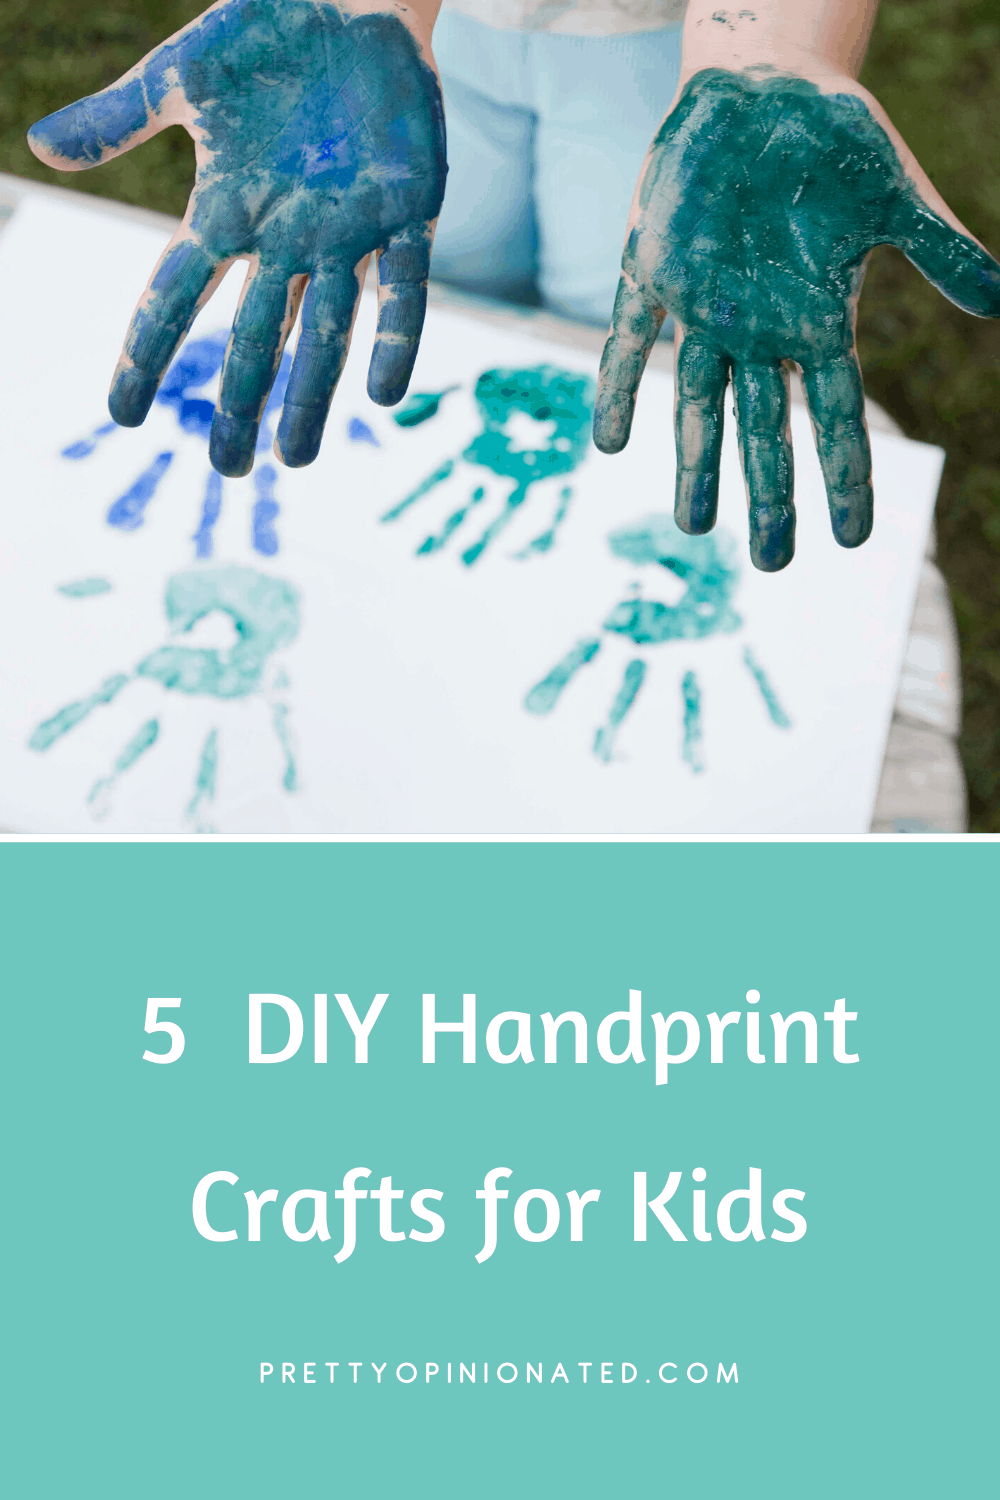 Keep kids busy indoors and get a head start on your Mother's Day gifts with these 5 super cute handprint crafts for all ages! Check them out!